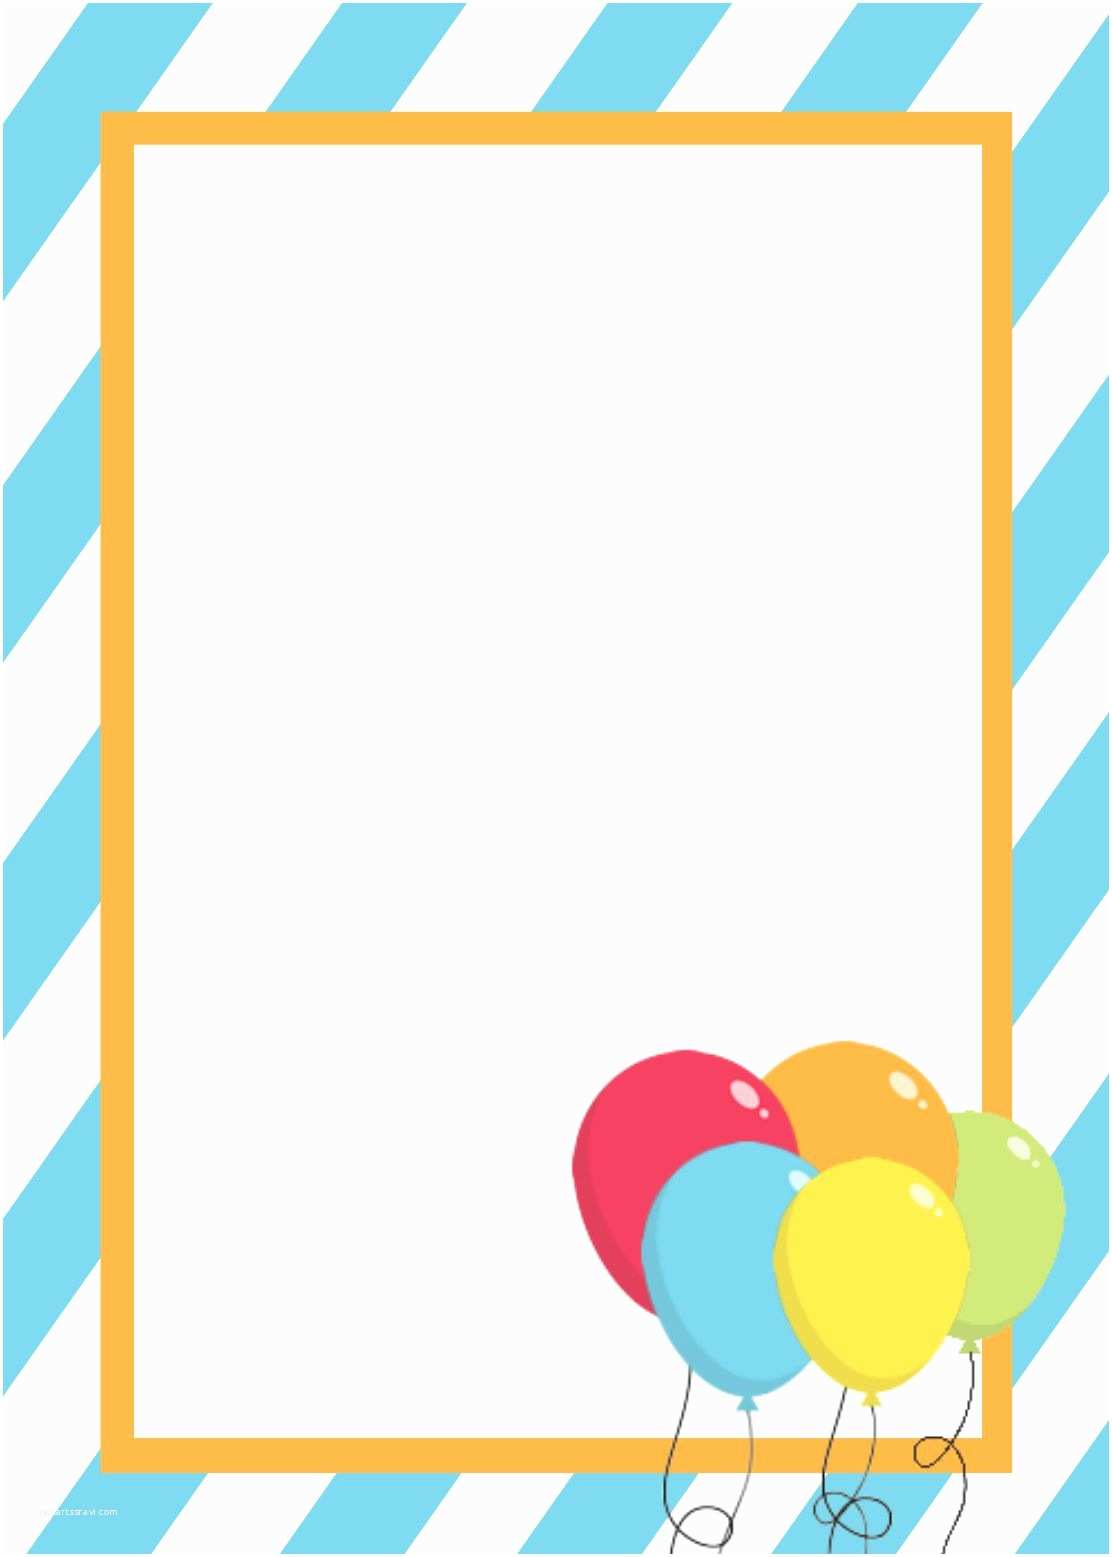 Blank Birthday Invitations Blank Invitation Templates Free for Word Blank